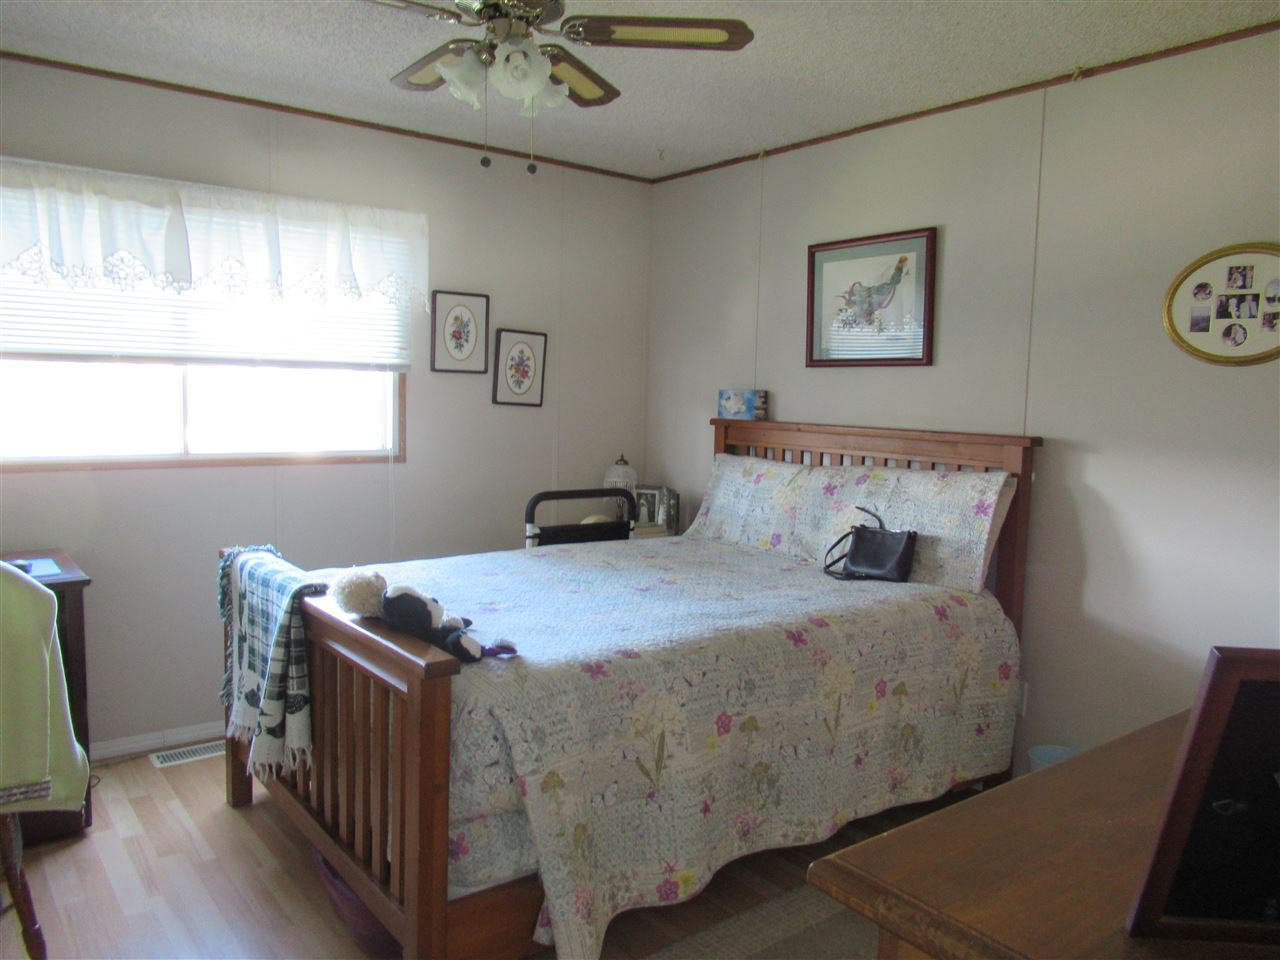 Photo 13: Photos: 75 770 11TH Avenue in Williams Lake: Williams Lake - City Manufactured Home for sale (Williams Lake (Zone 27))  : MLS®# R2368538